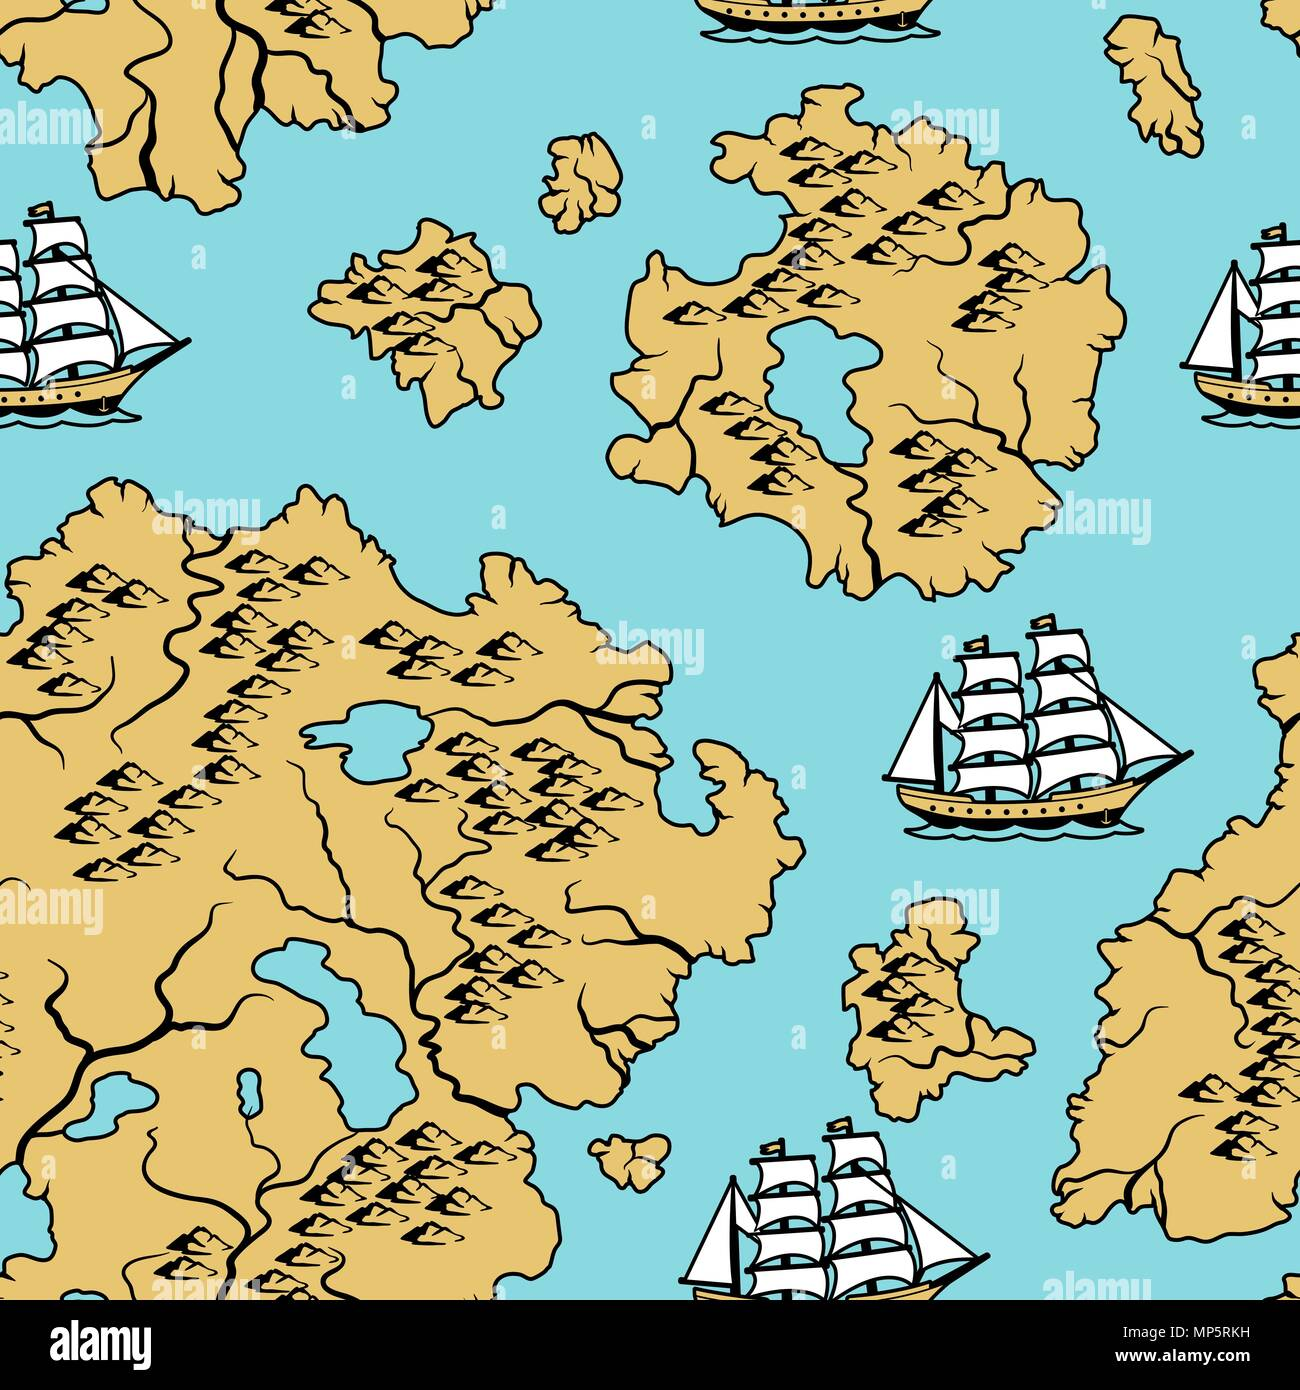 Seamless pattern with old nautical map. - Stock Vector